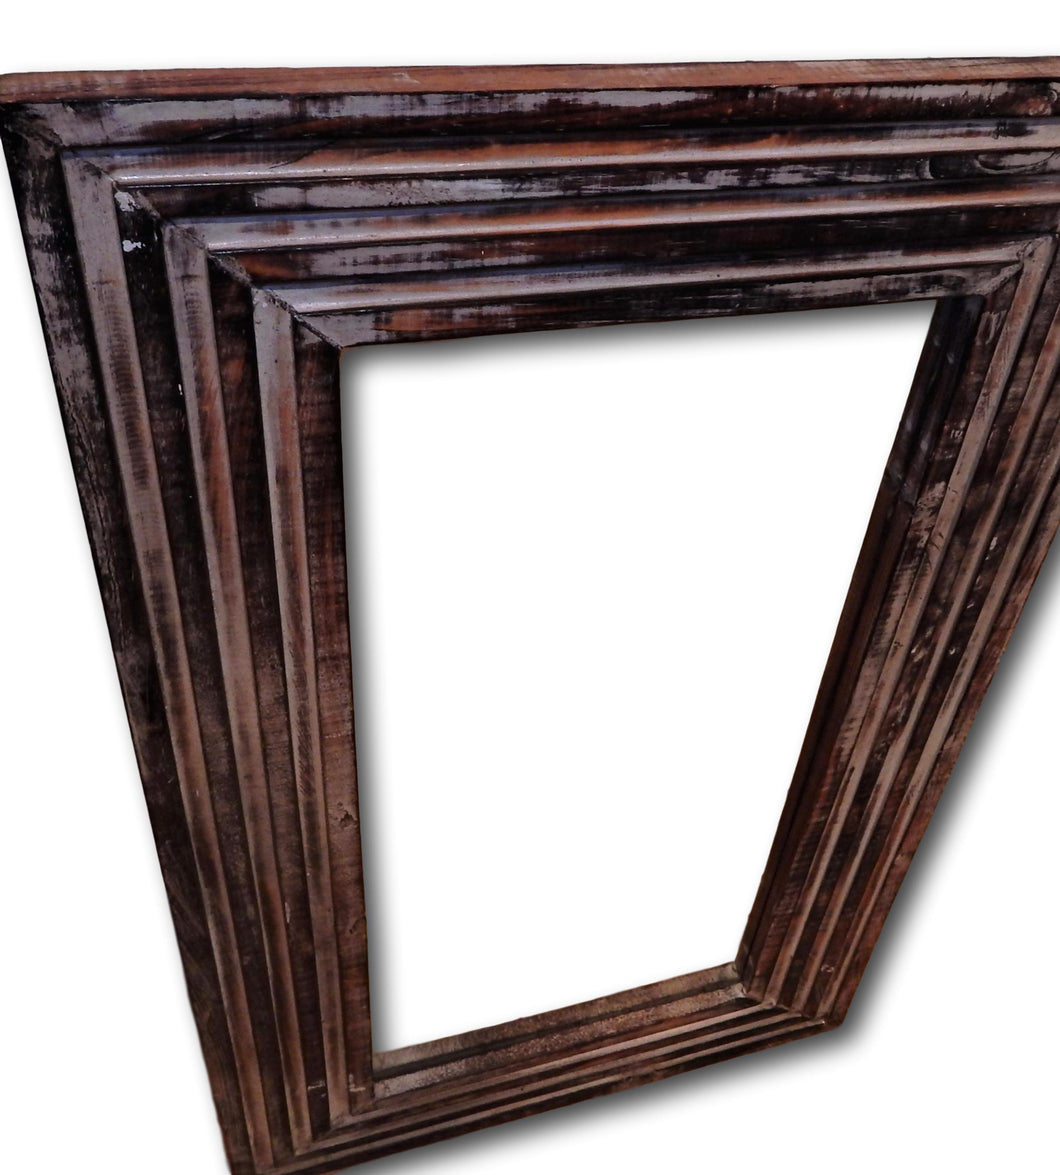 Wall mirror in frame hand carved from Reclaimed wood